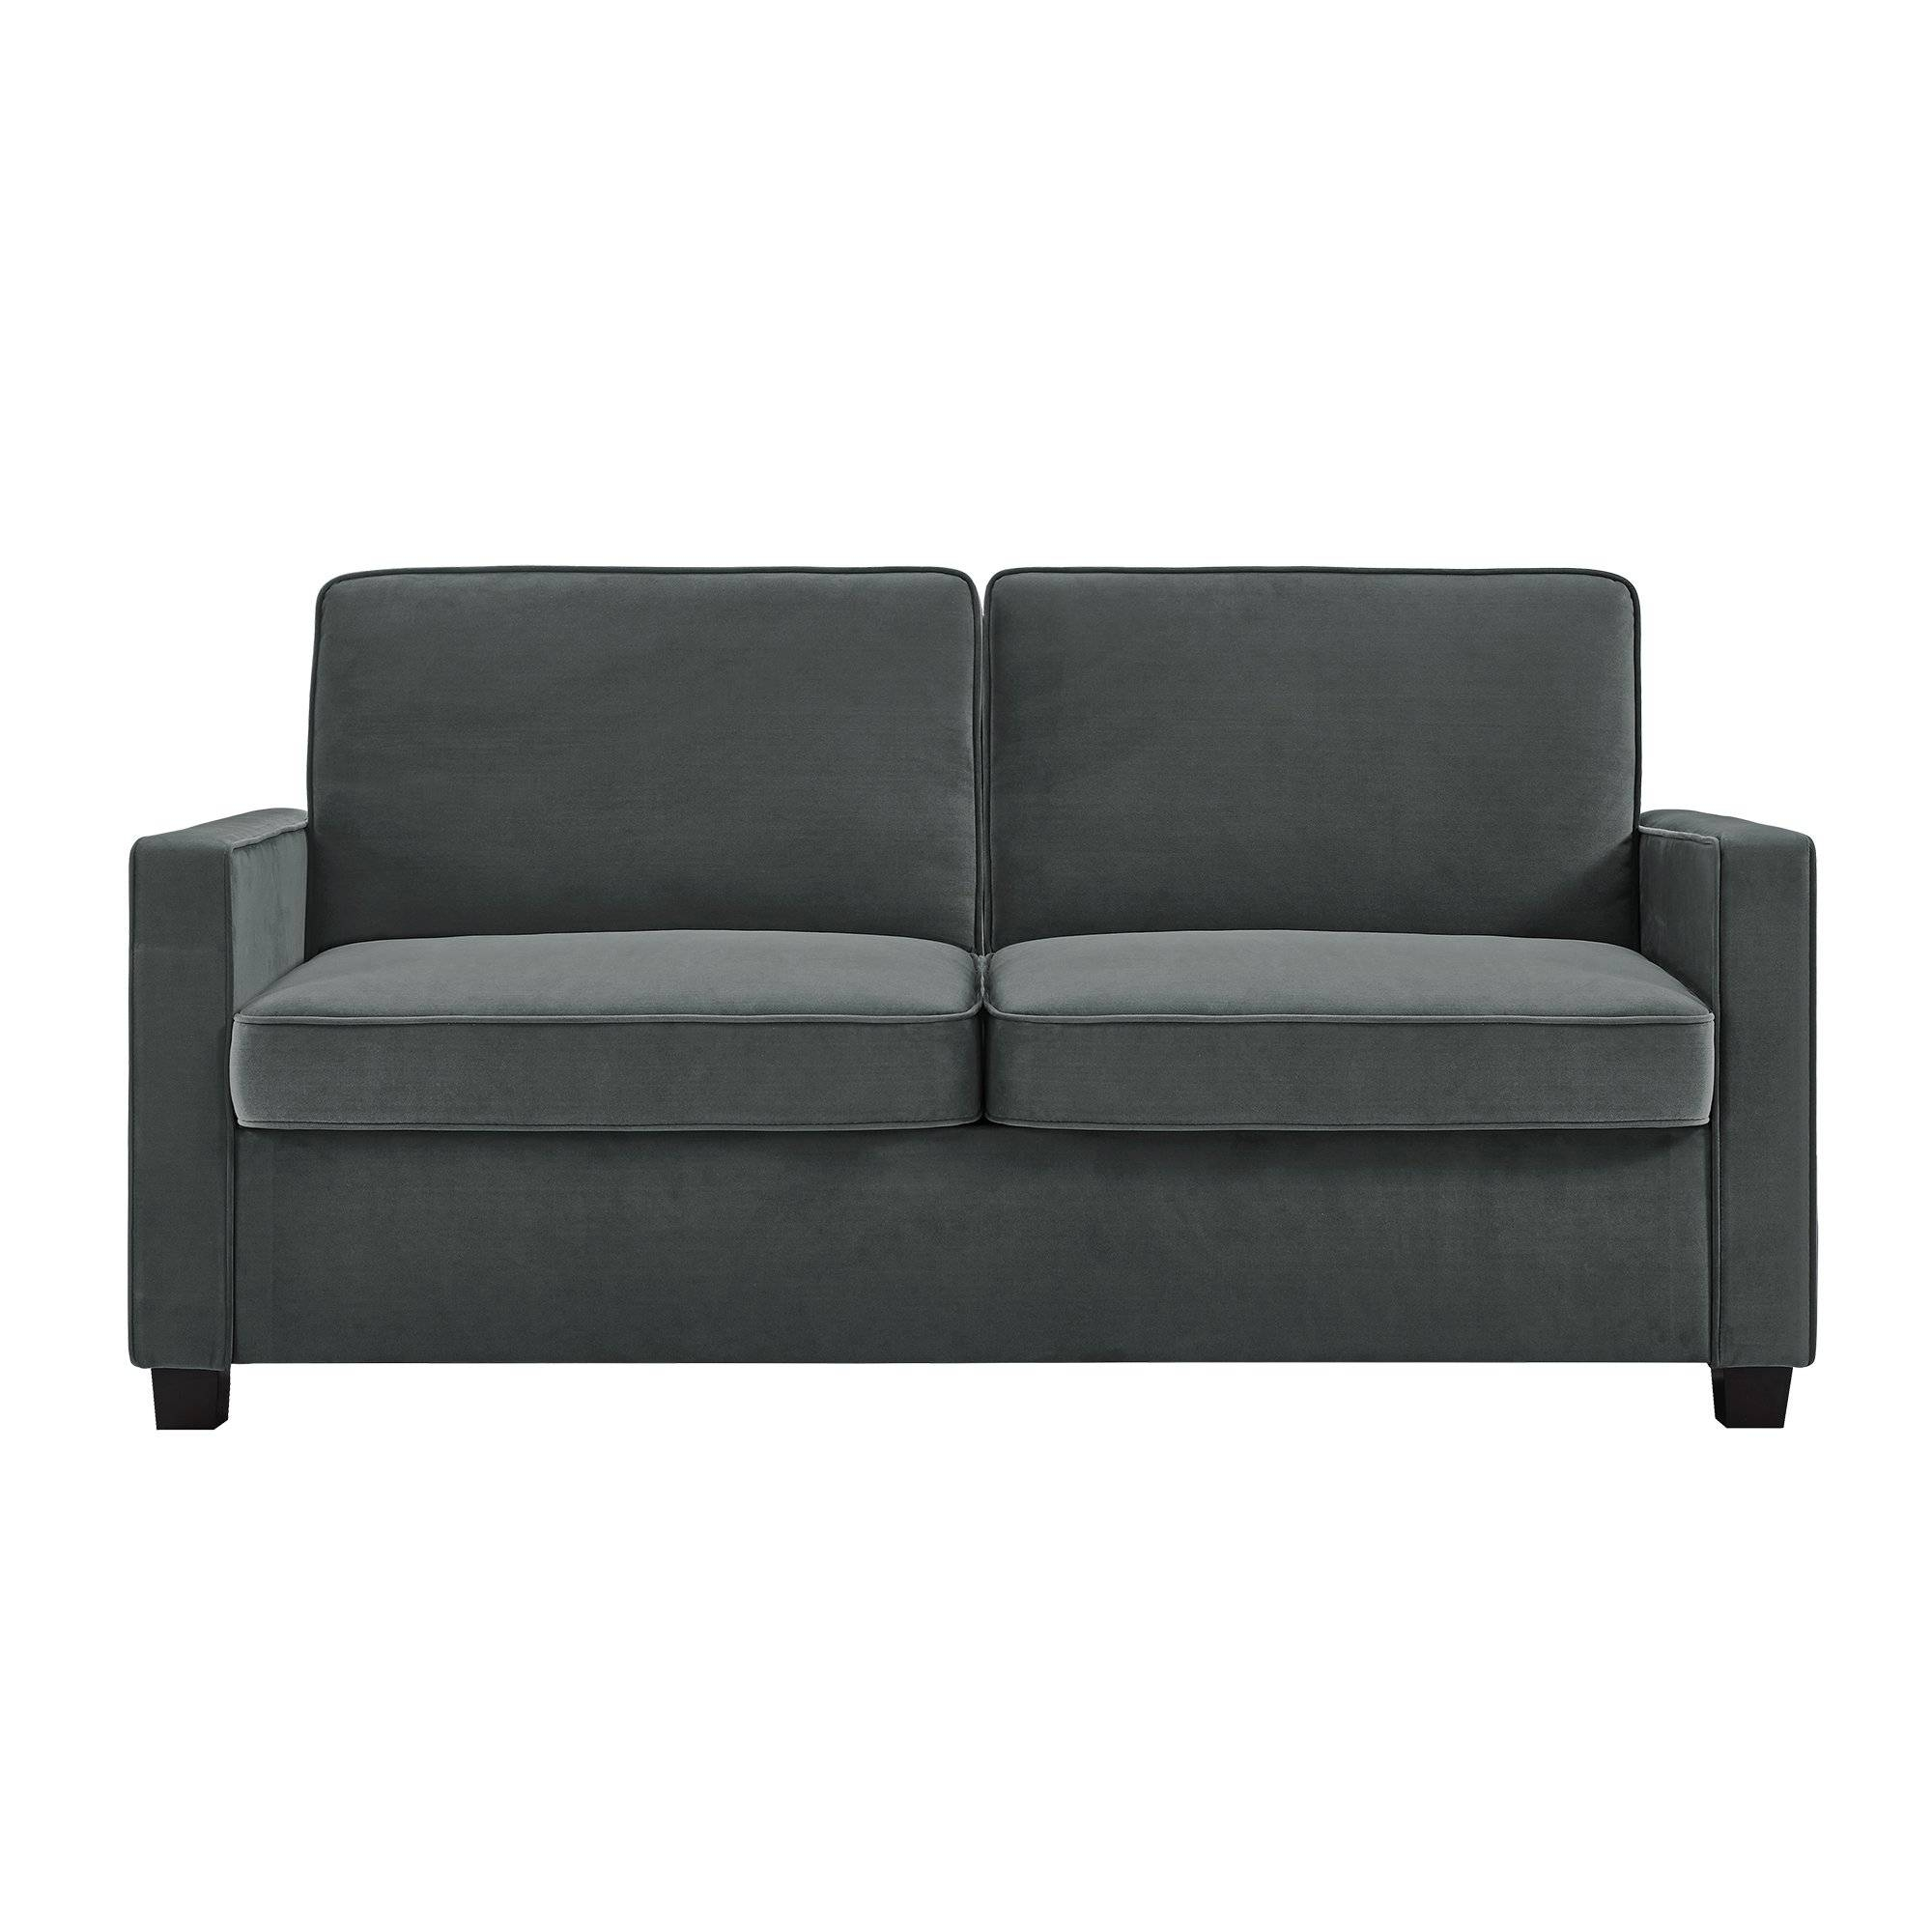 furniture row sofa sleepers alister table desk top 30 of loveseat twin sleeper sofas